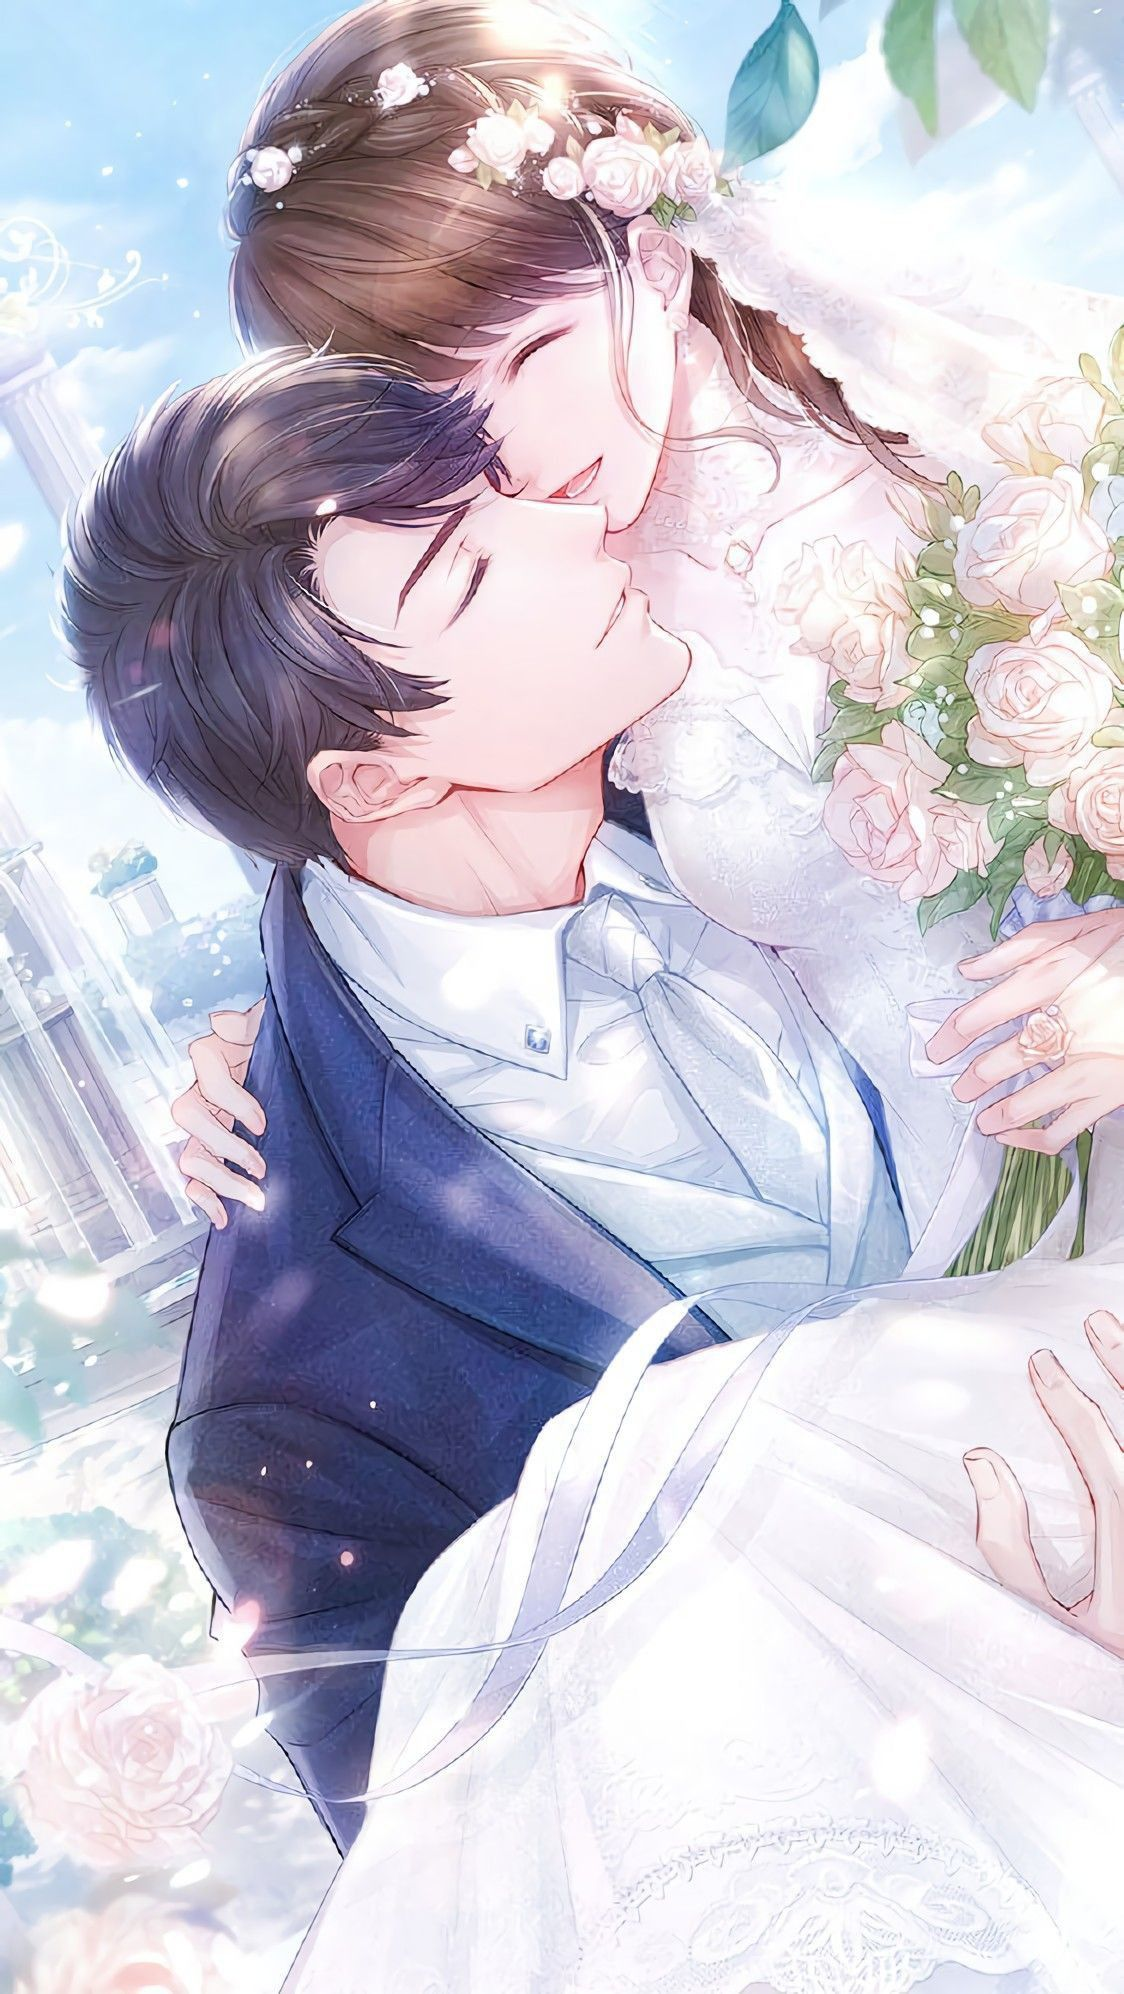 Lovely Couples の画像 投稿者 Asin Smile さん 恋人 イラスト